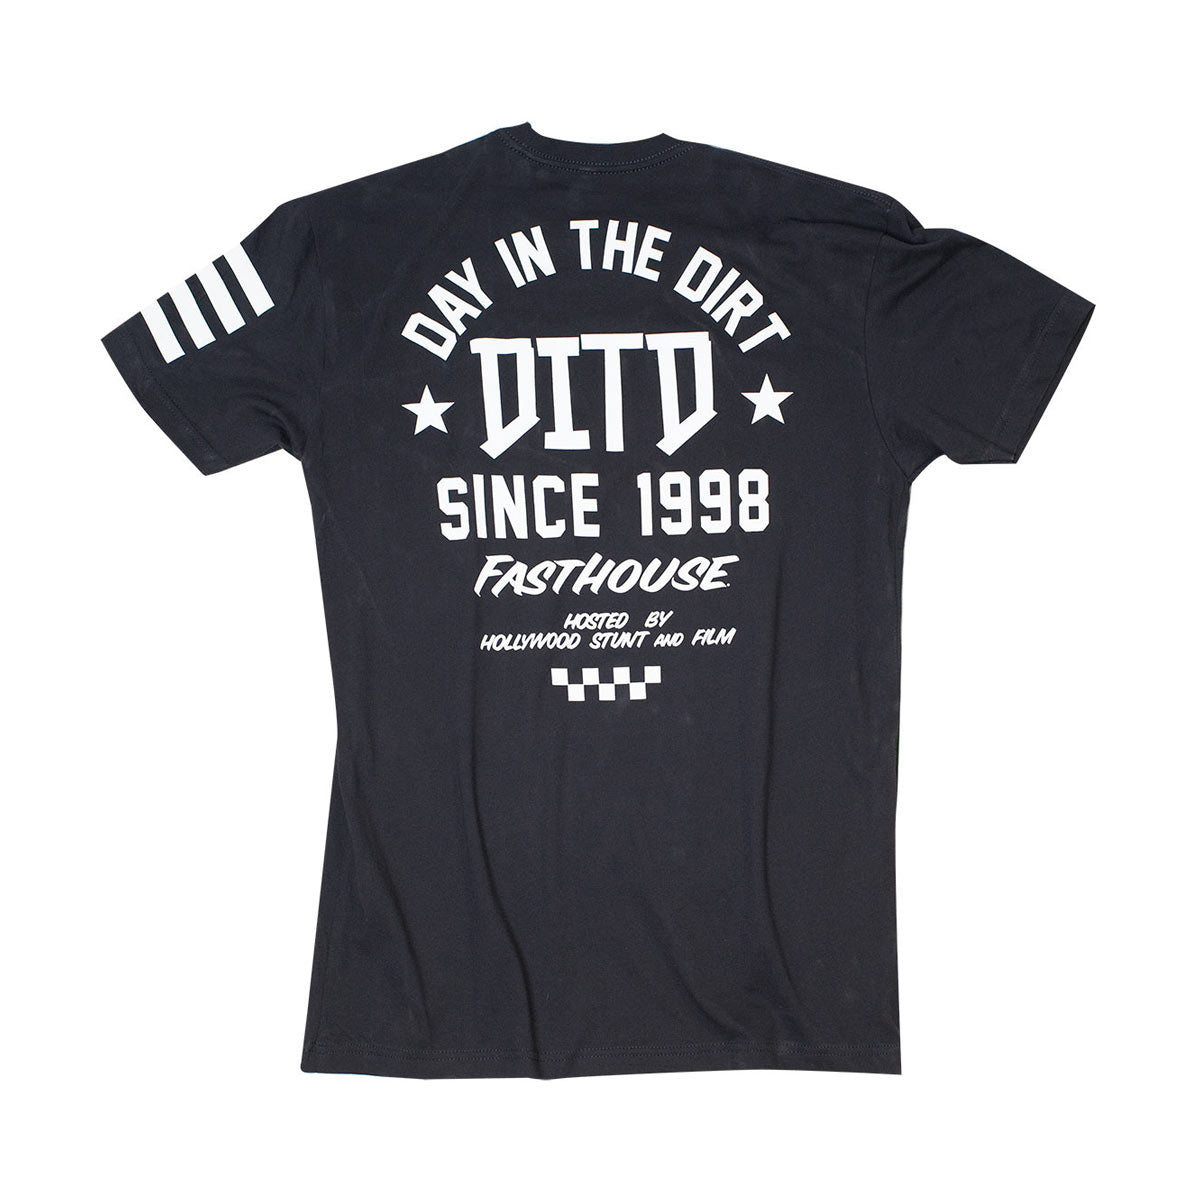 Day in the Dirt 23 Notorious Youth Tee - Black